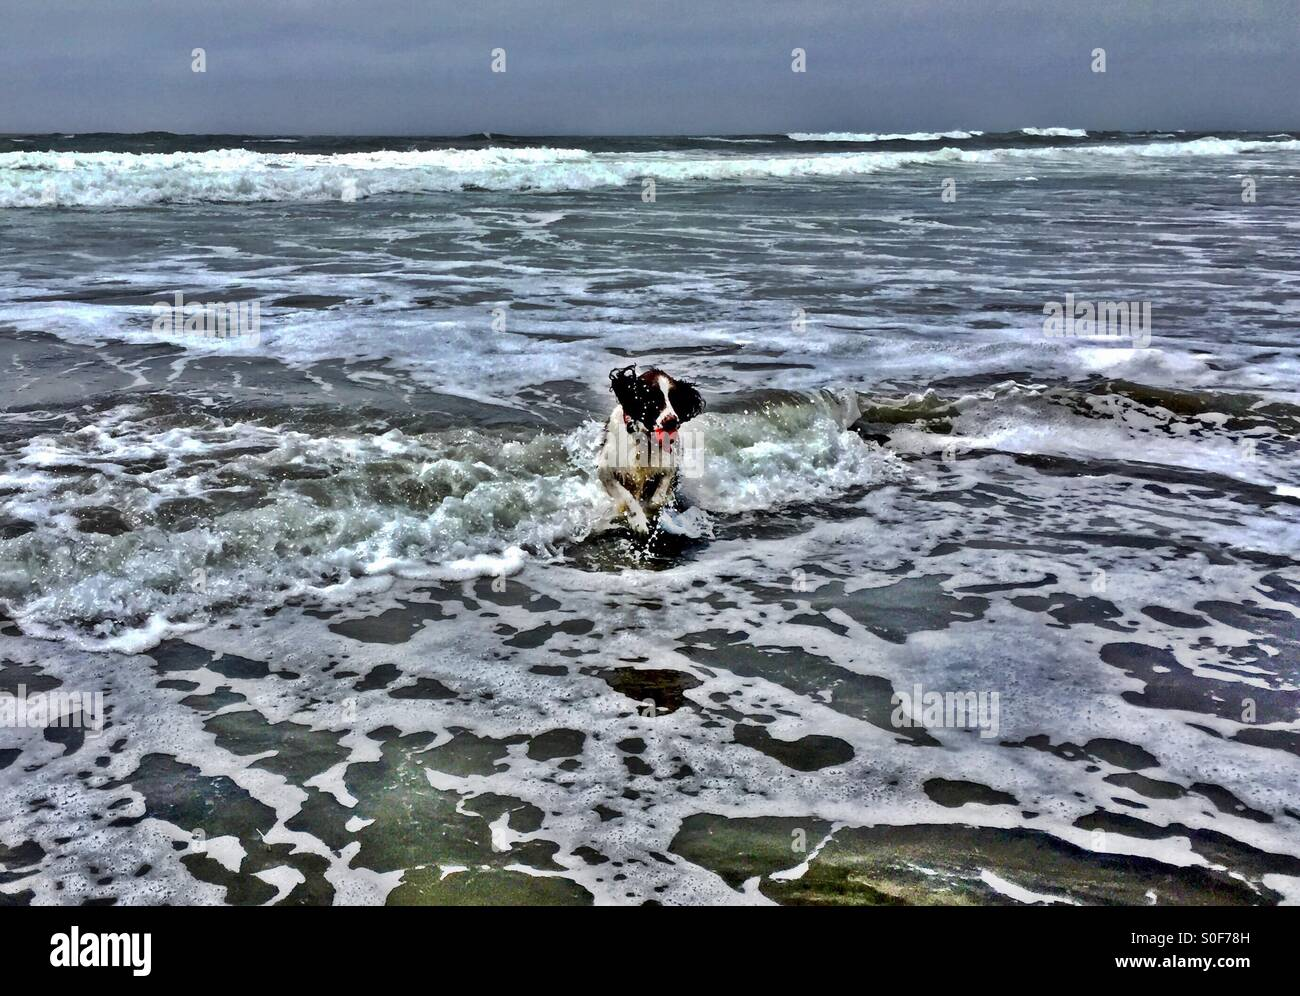 English Springer Spaniel retrieves ball from crashing surf. Ocean Beach, San Francisco, CA, USA. - Stock Image